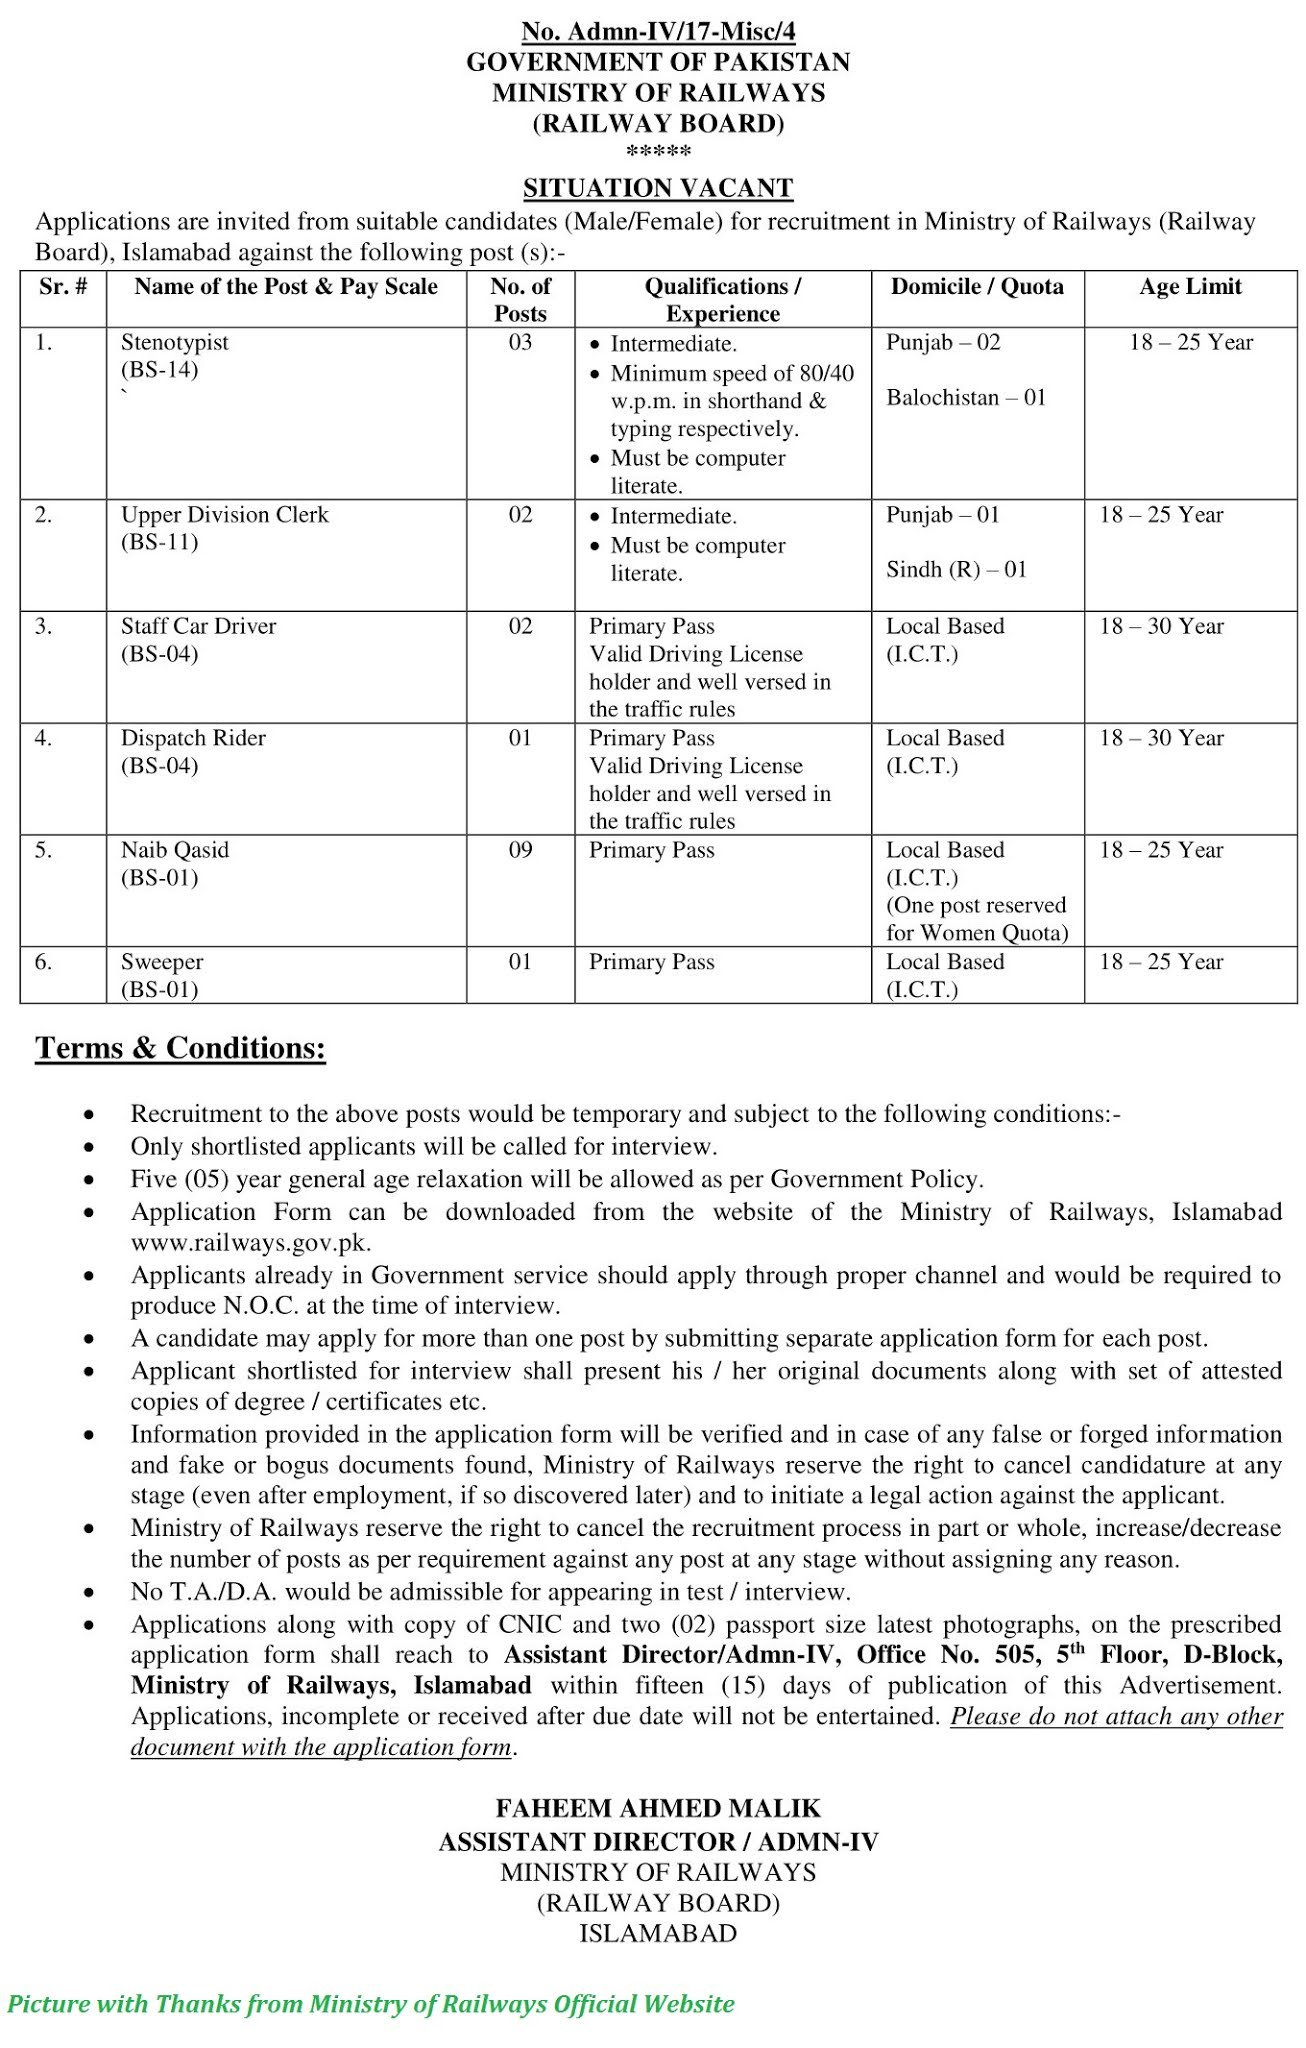 Pakistan Railway Jobs 2020 - Latest Jobs in Pakistan Railway 2020 Download Application forms for Pakistan Railway Jobs October - 2020